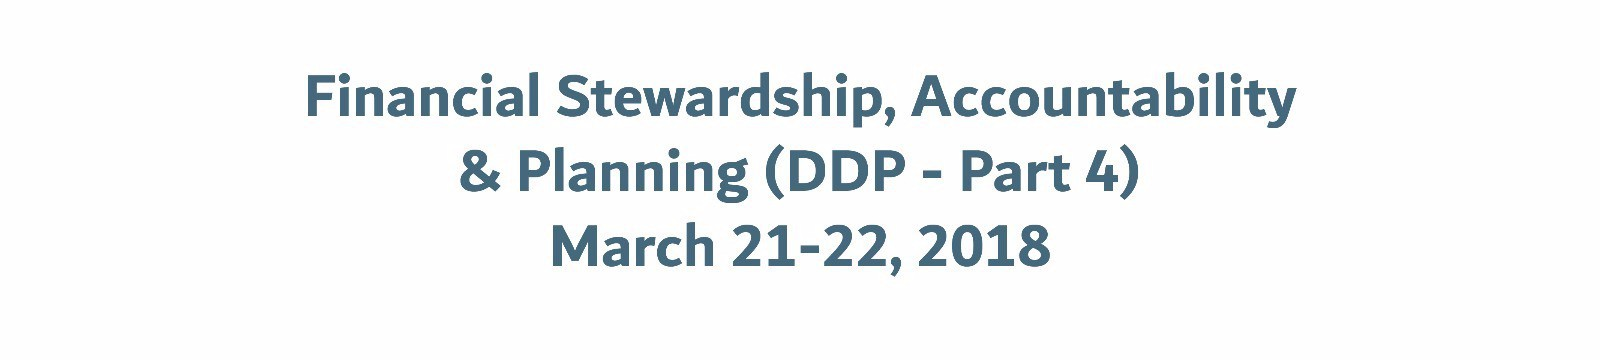 Financial Stewardship, Accountability & Planning (DDP - Part 4)